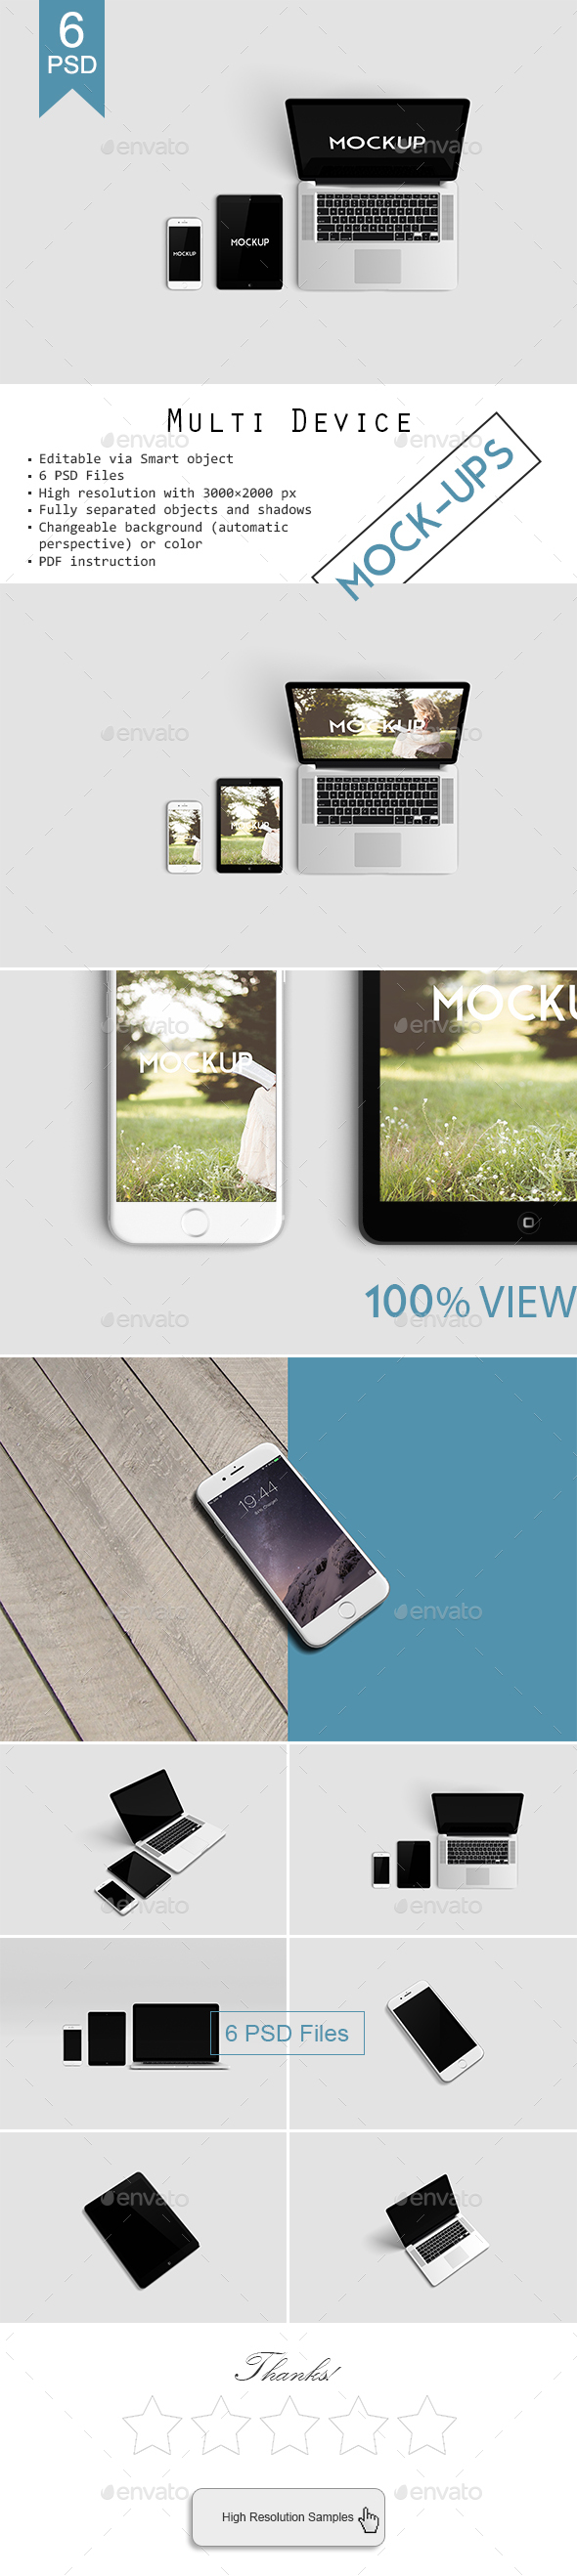 iphone-ipad PSD MOCKUP